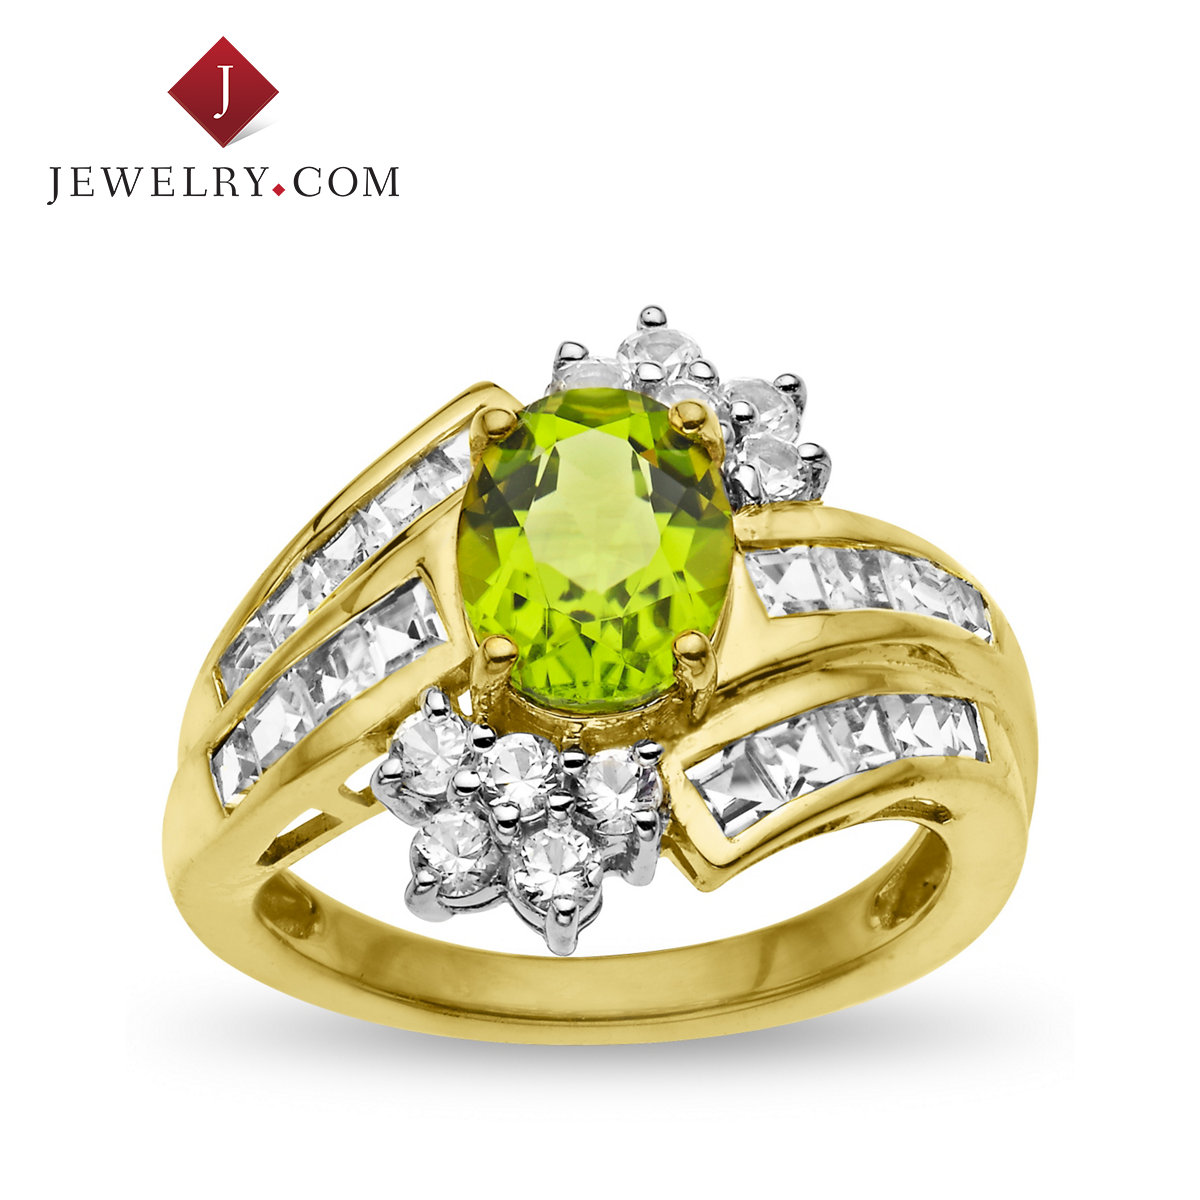 Jewelry.com official silver plated 925 k gold ring inlaid 3.5 karat olivine and white and blue gem nvjie